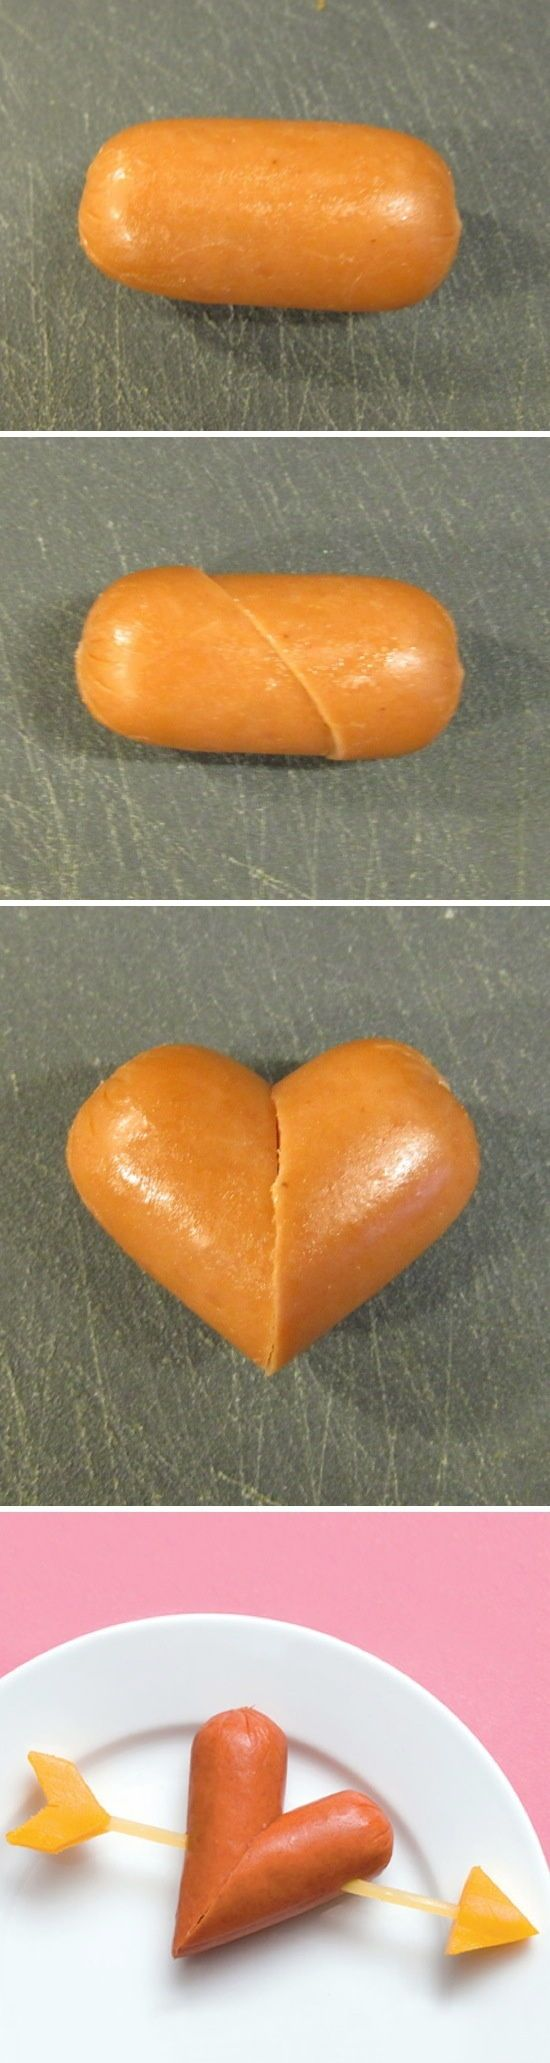 SAUSAGE HEART for that special day -#heart #sausage #valentines Day